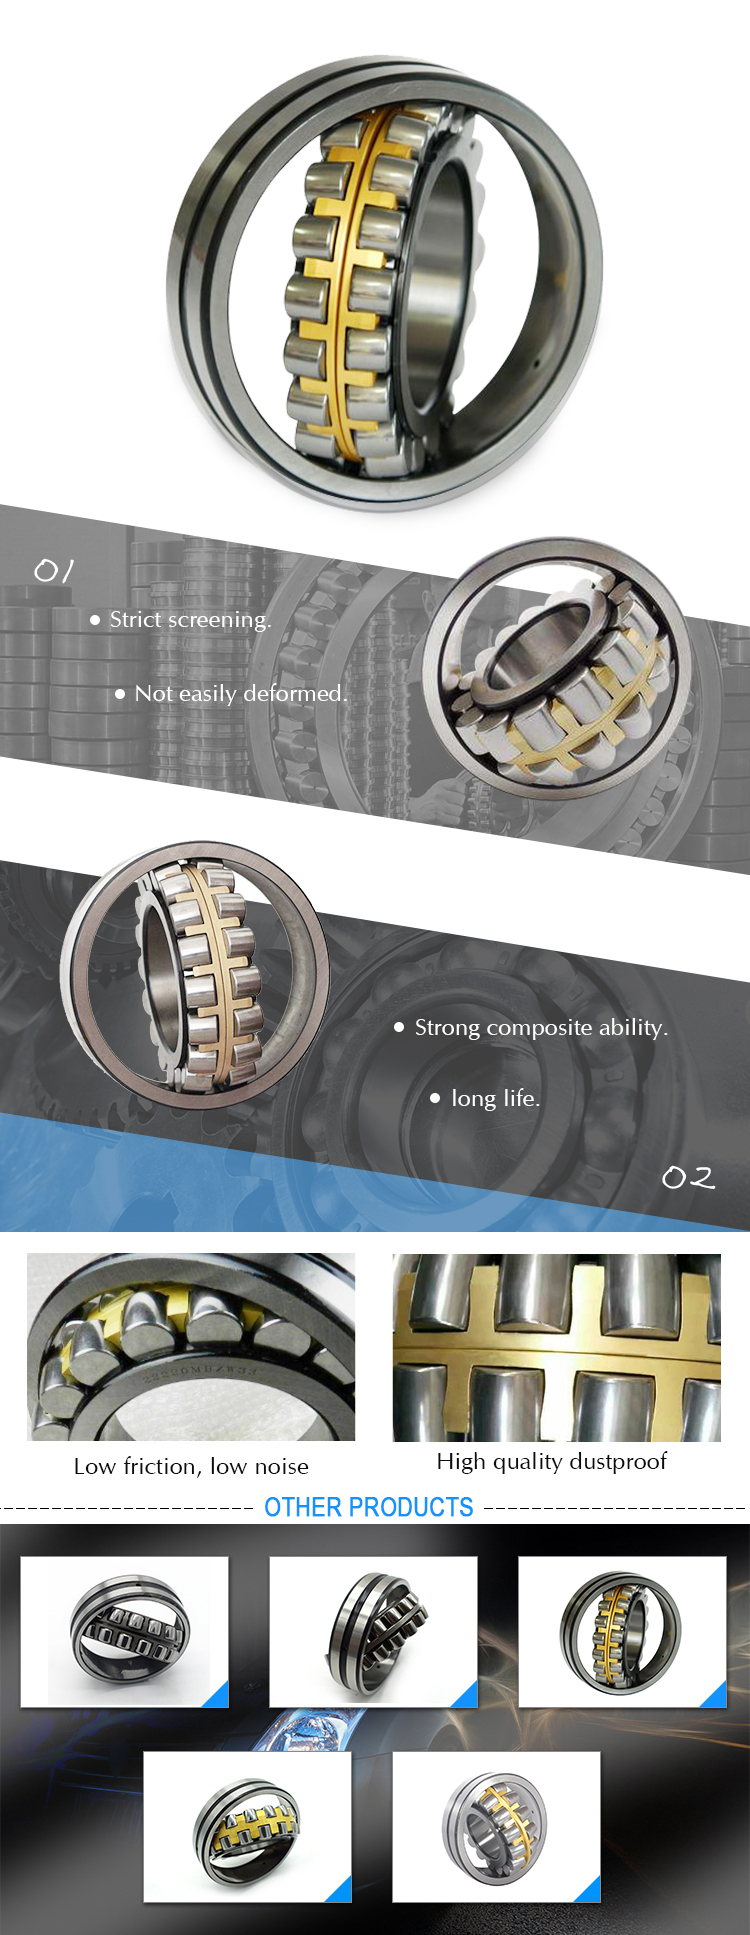 spherical roller bearing.jpg